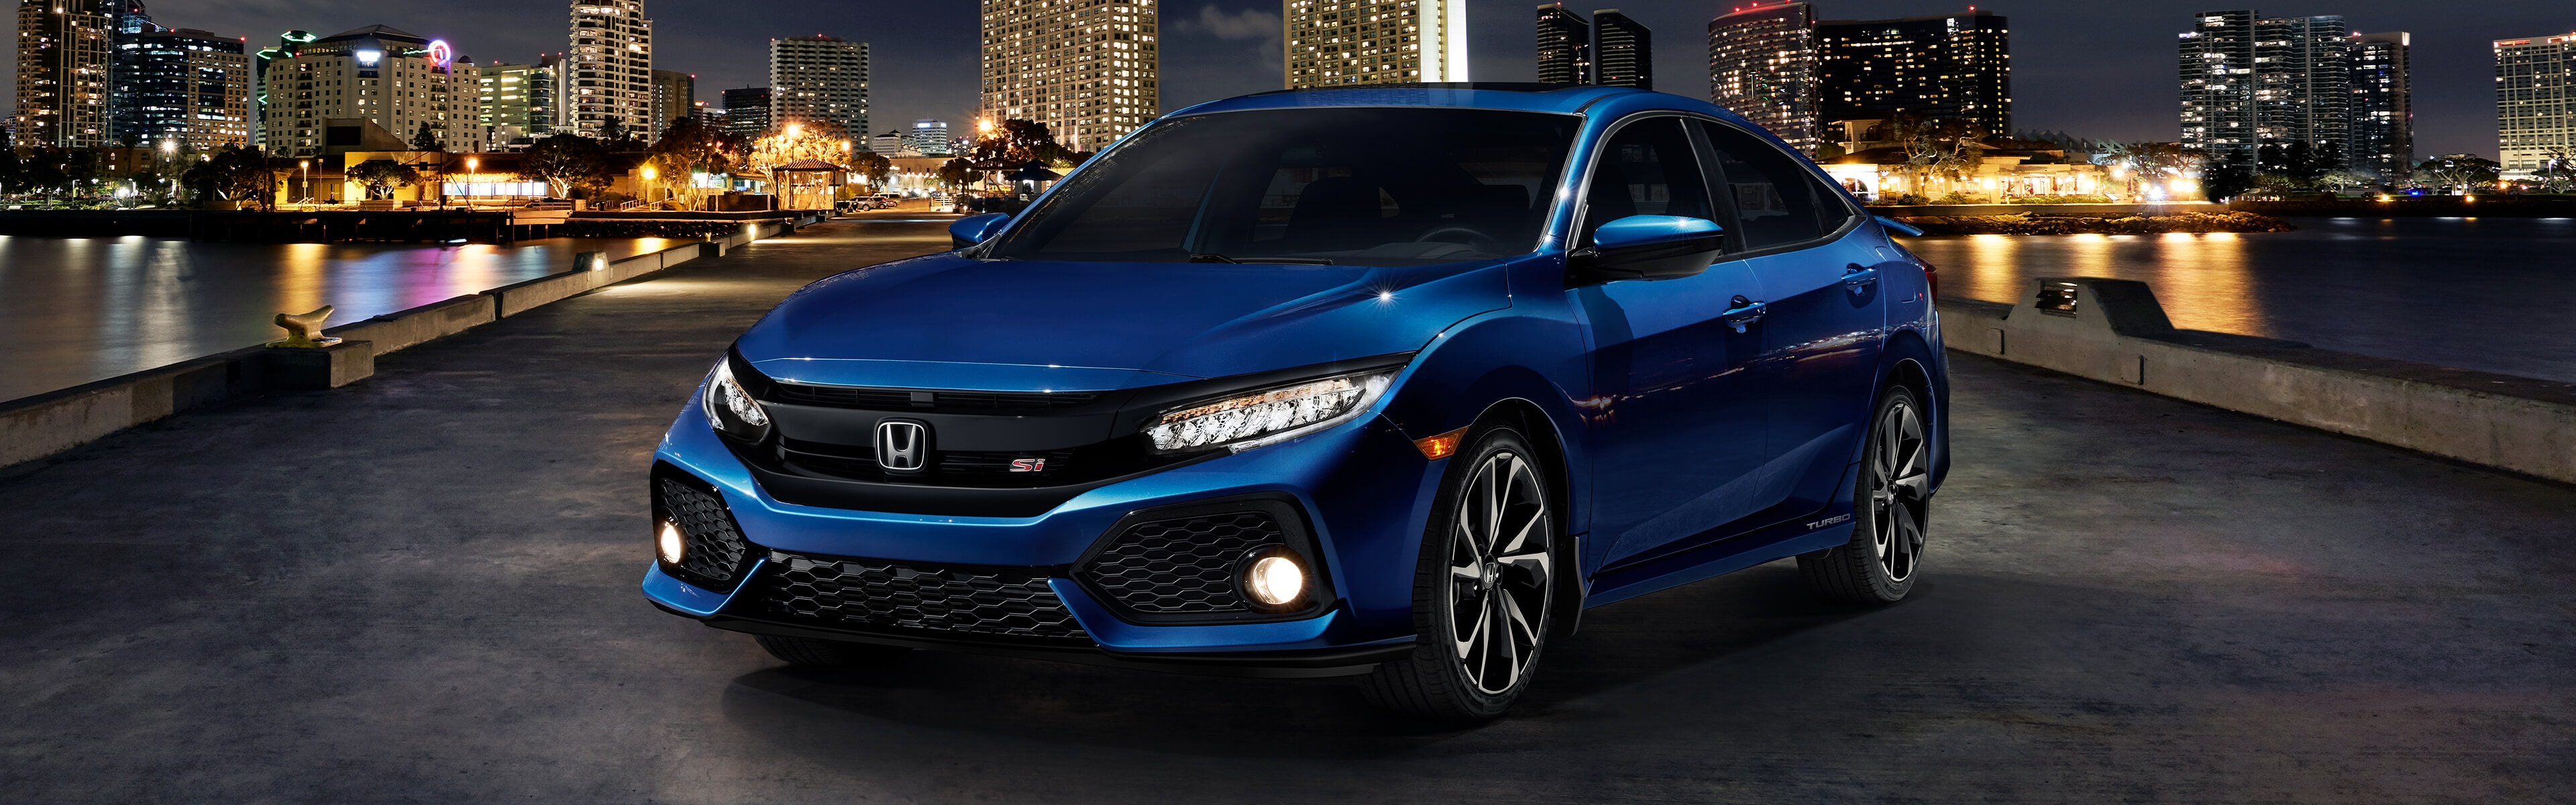 civic the a city honda of accessories lineup si explore performance sedan background factory with